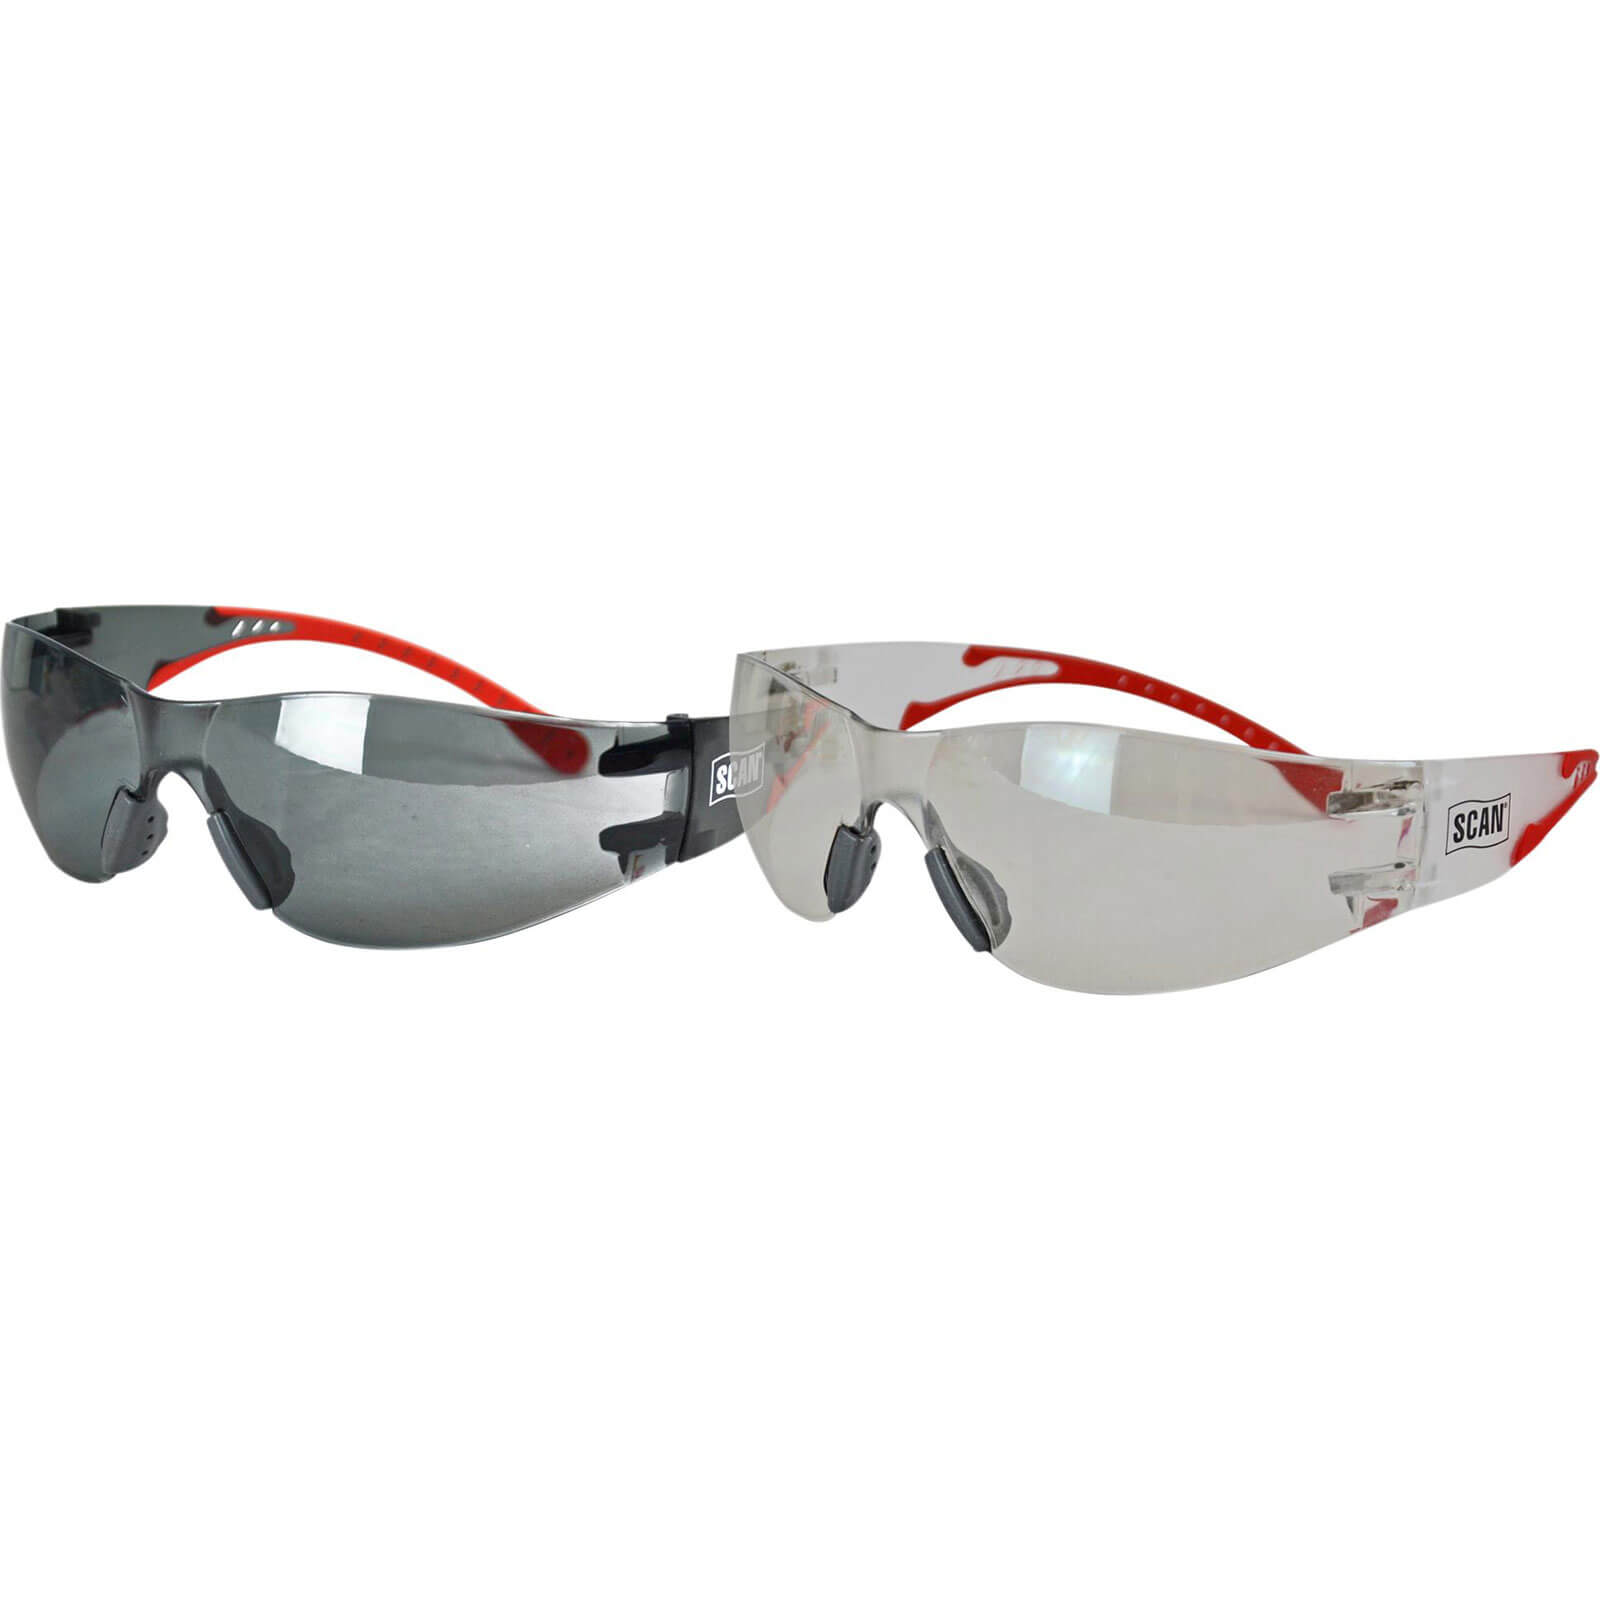 Image of Scan Flexi-Spec Safety Glasses Twin Pack